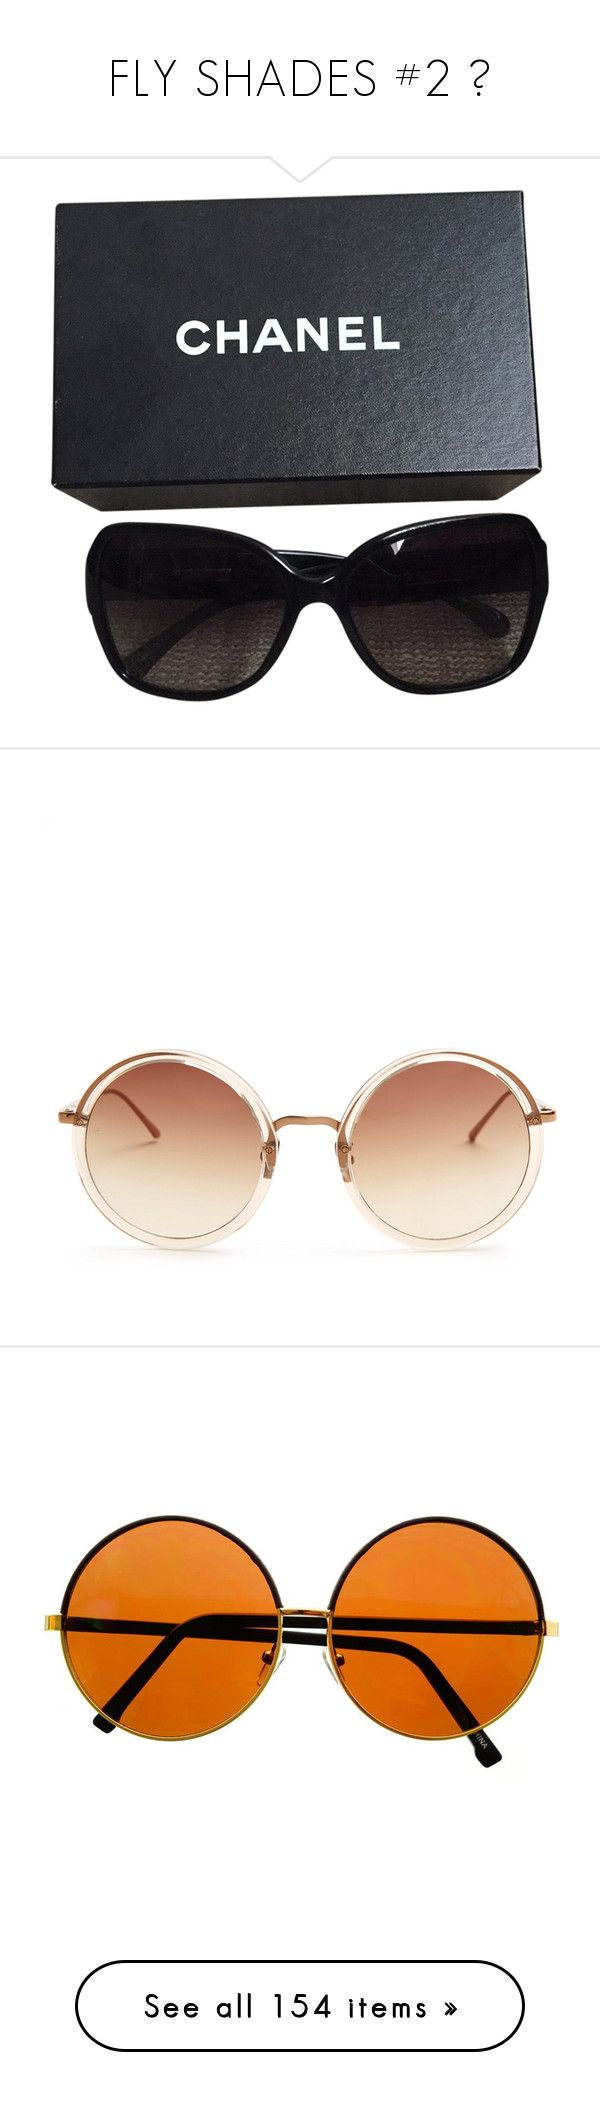 """FLY SHADES #2 🌹"" by theonlydej ❤ liked on Polyvore featuring accessories, eyewear, sunglasses, glasses, black, chanel, chanel sunglasses, chanel eyewear, chanel glasses and oculos"